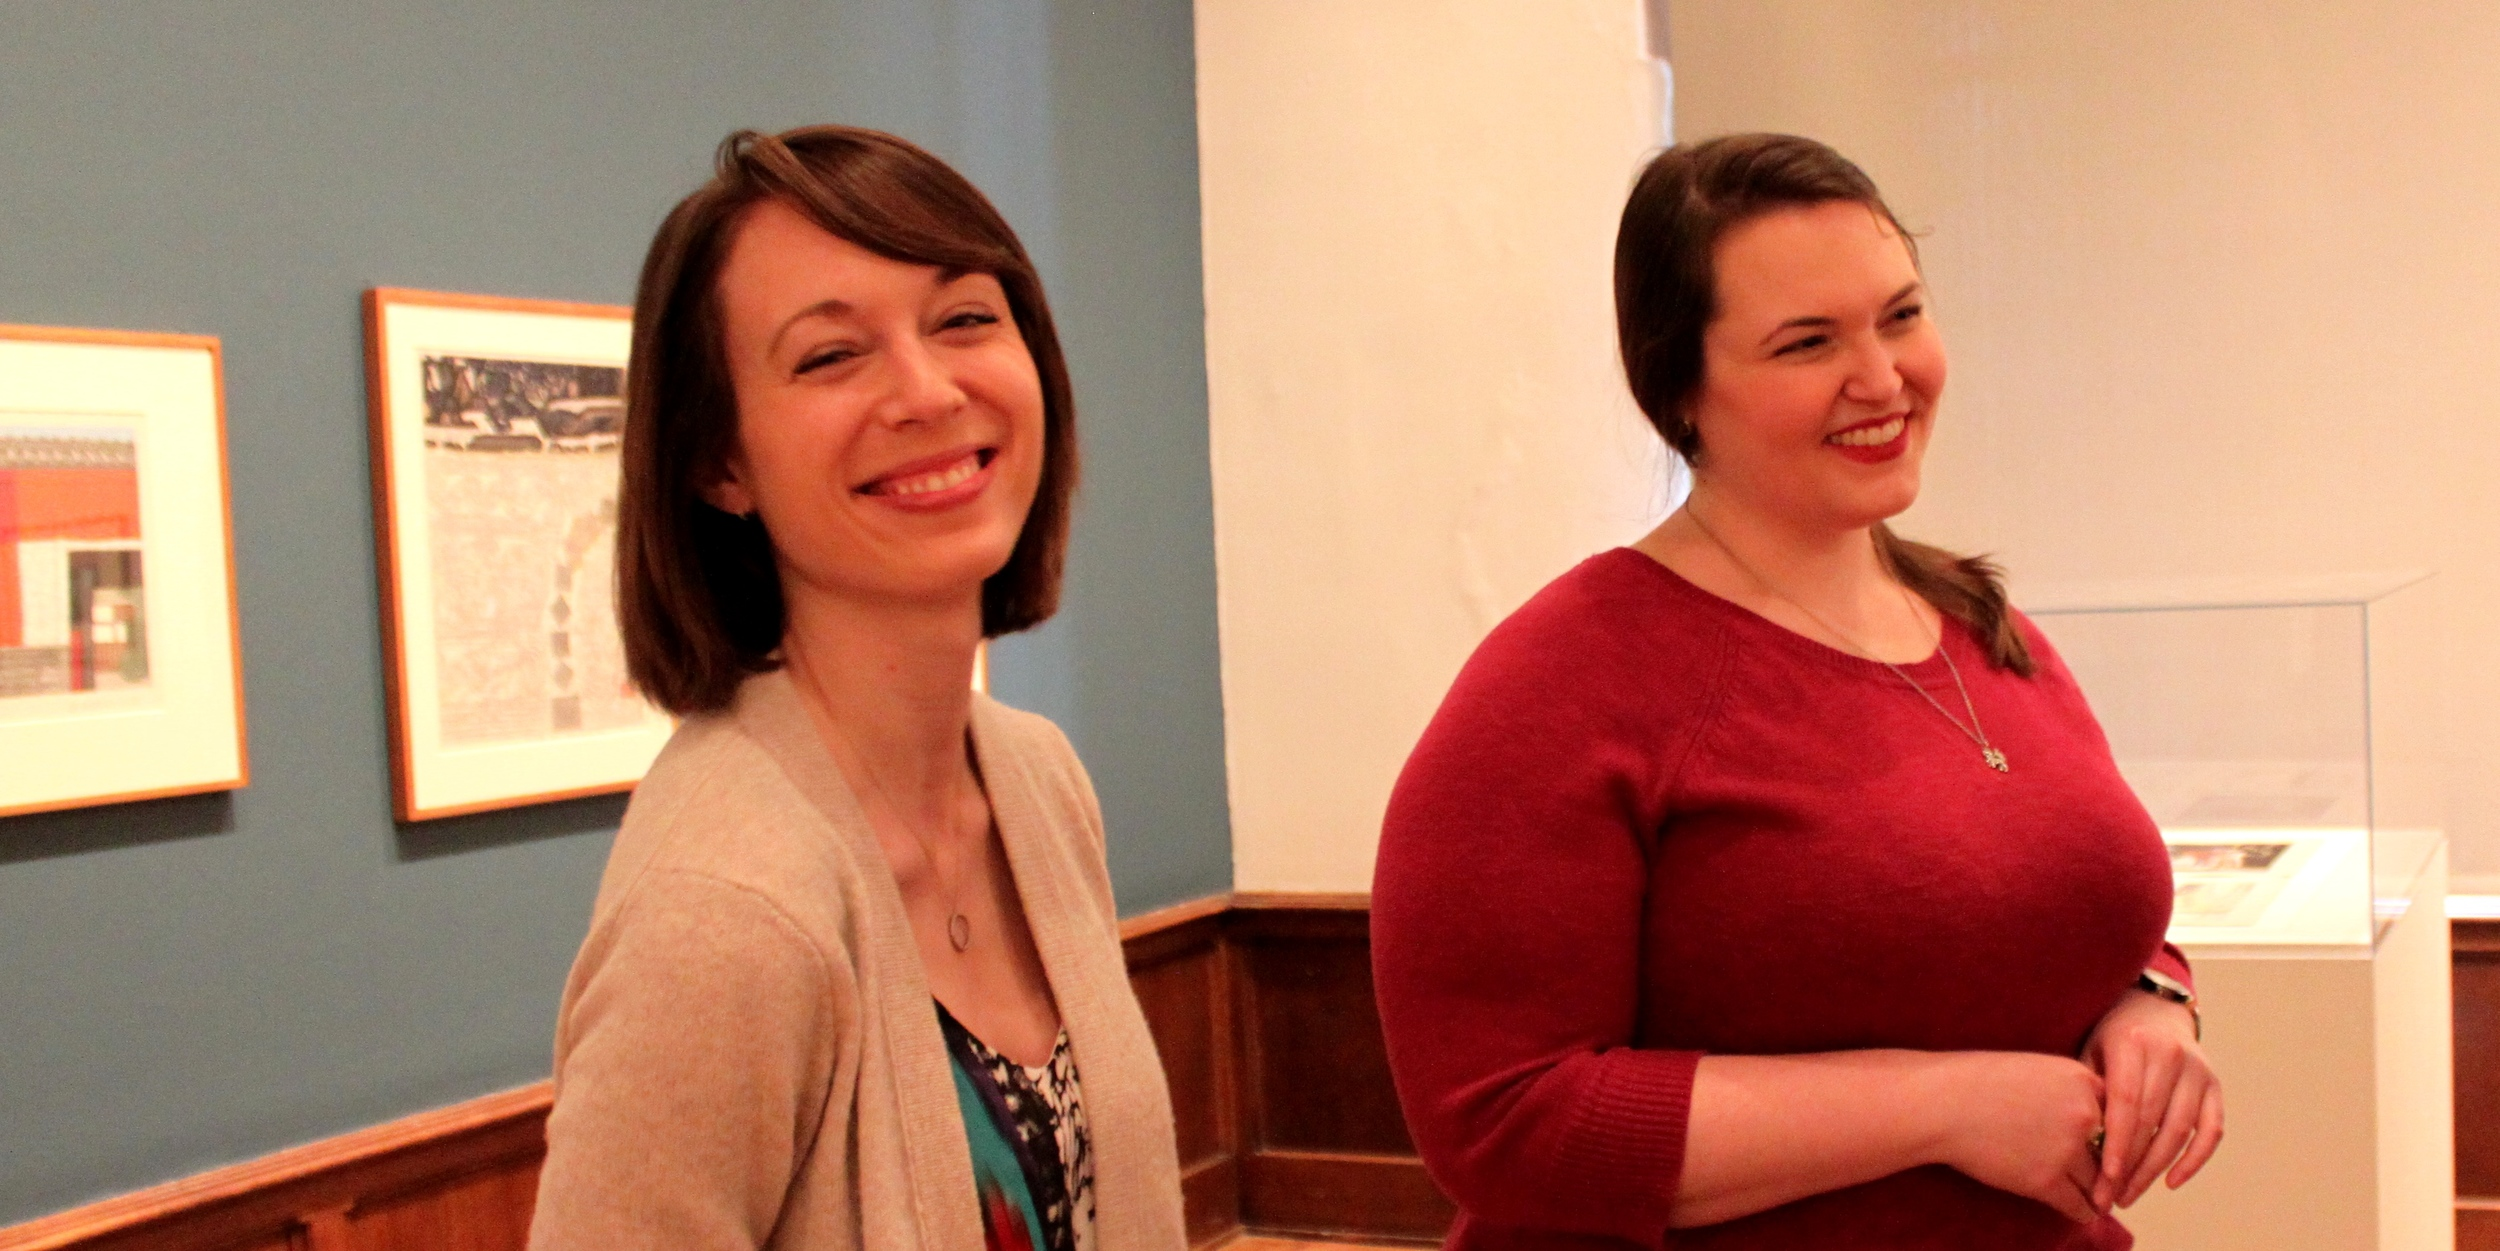 Kendra and Katelyn in the gallery.jpg